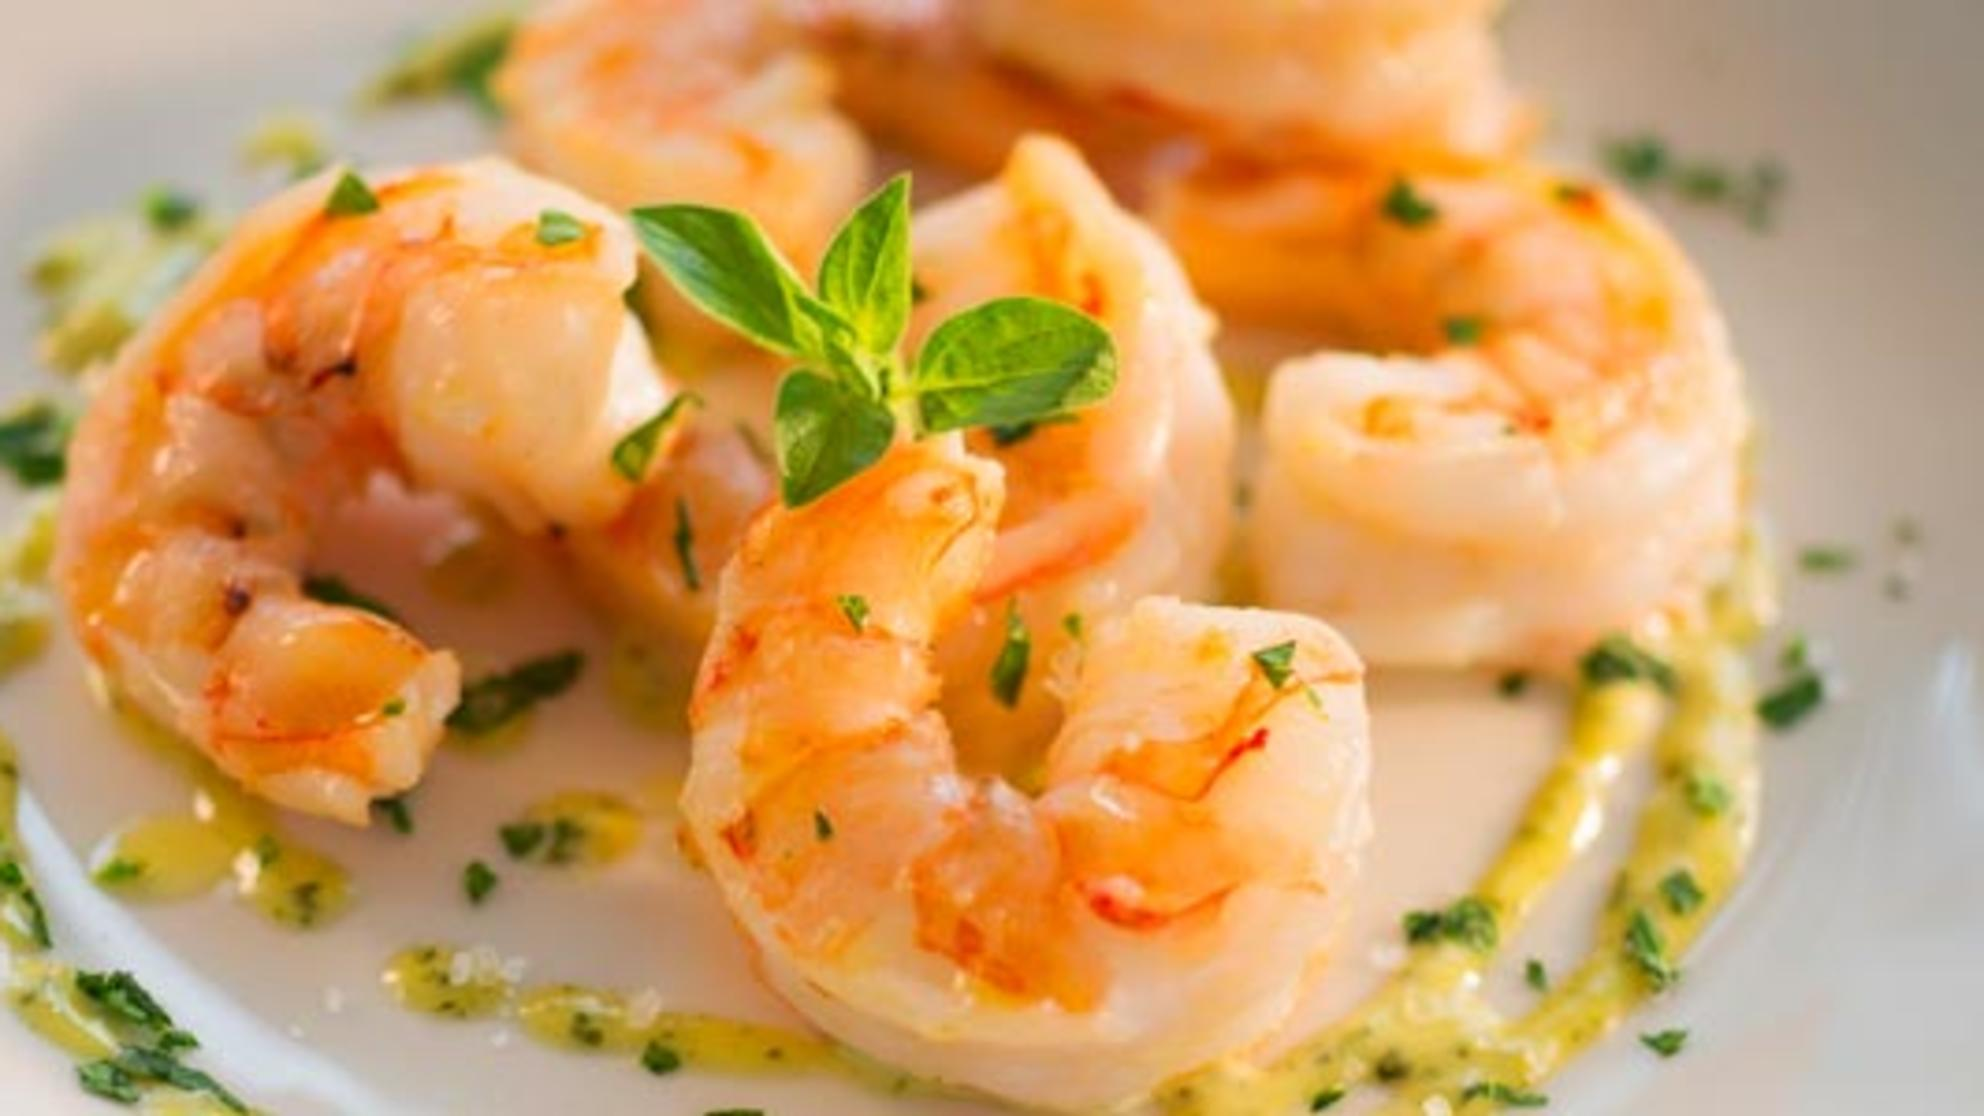 7 Things You Should Know About Shrimp Health